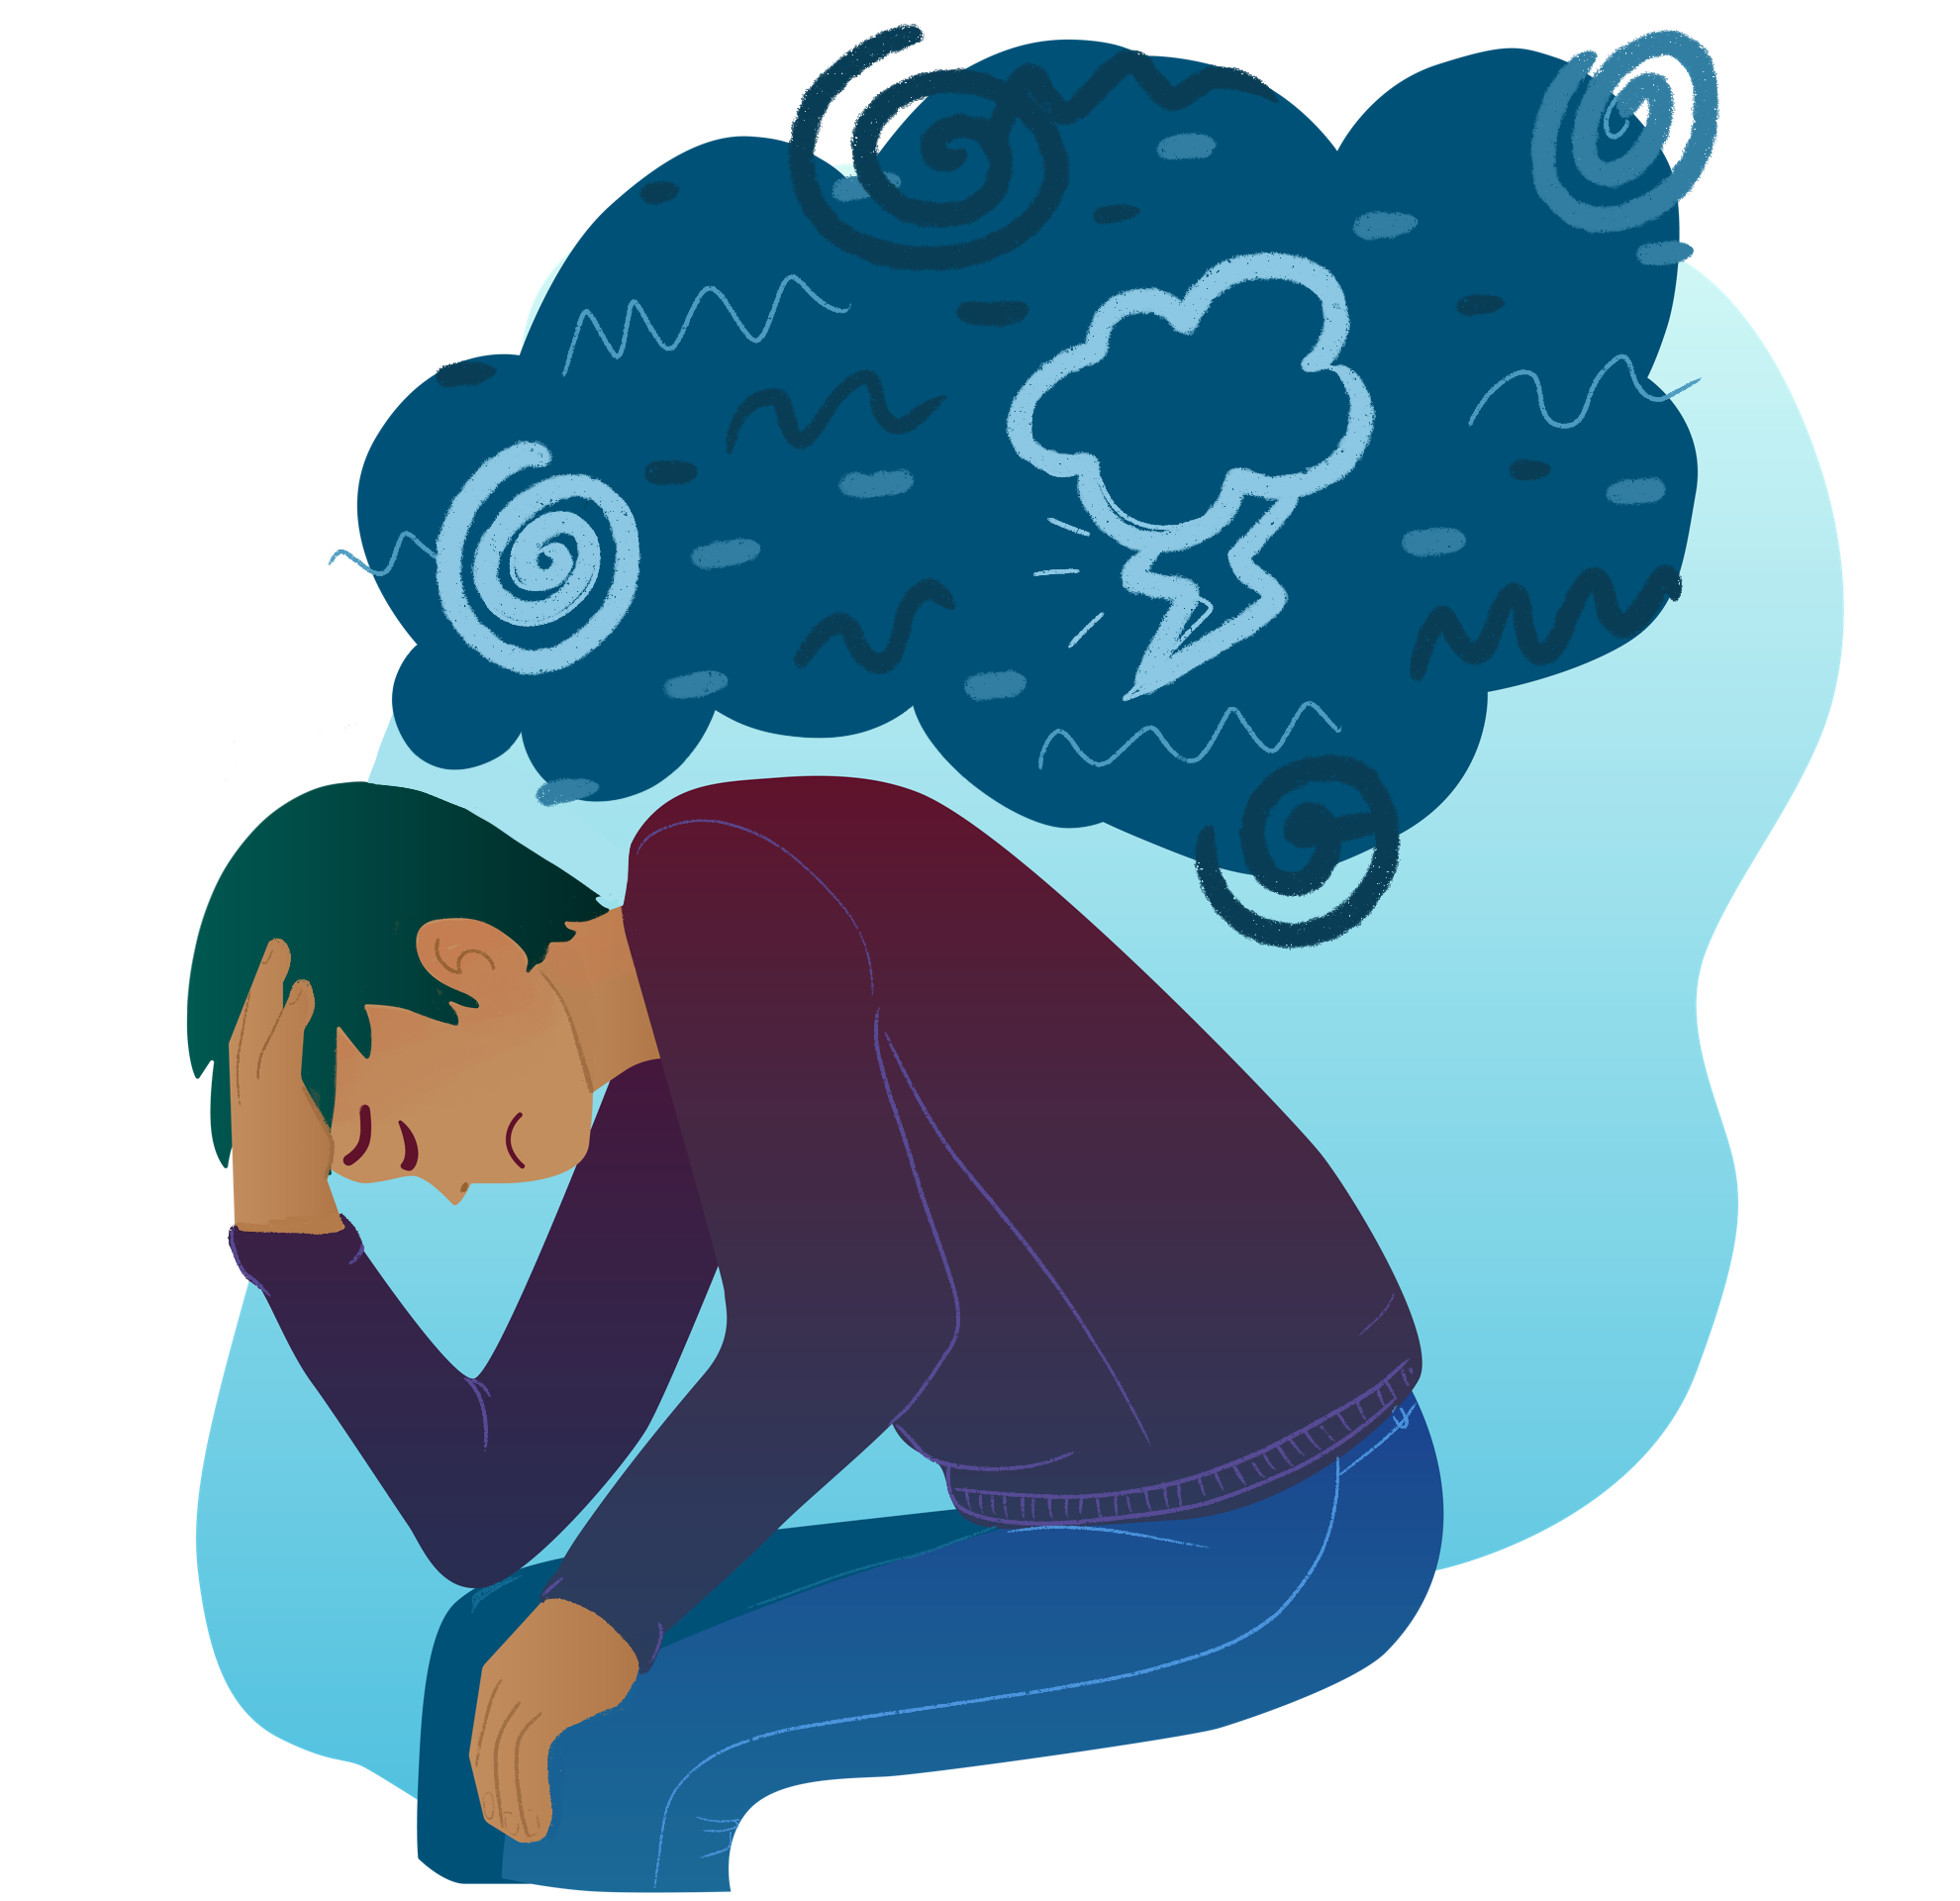 A man with light brown skin is resting his head in his hands looking depressed. Above him is a thought bubble that is filled with negative symbols, such as thunder cloud and swirl.